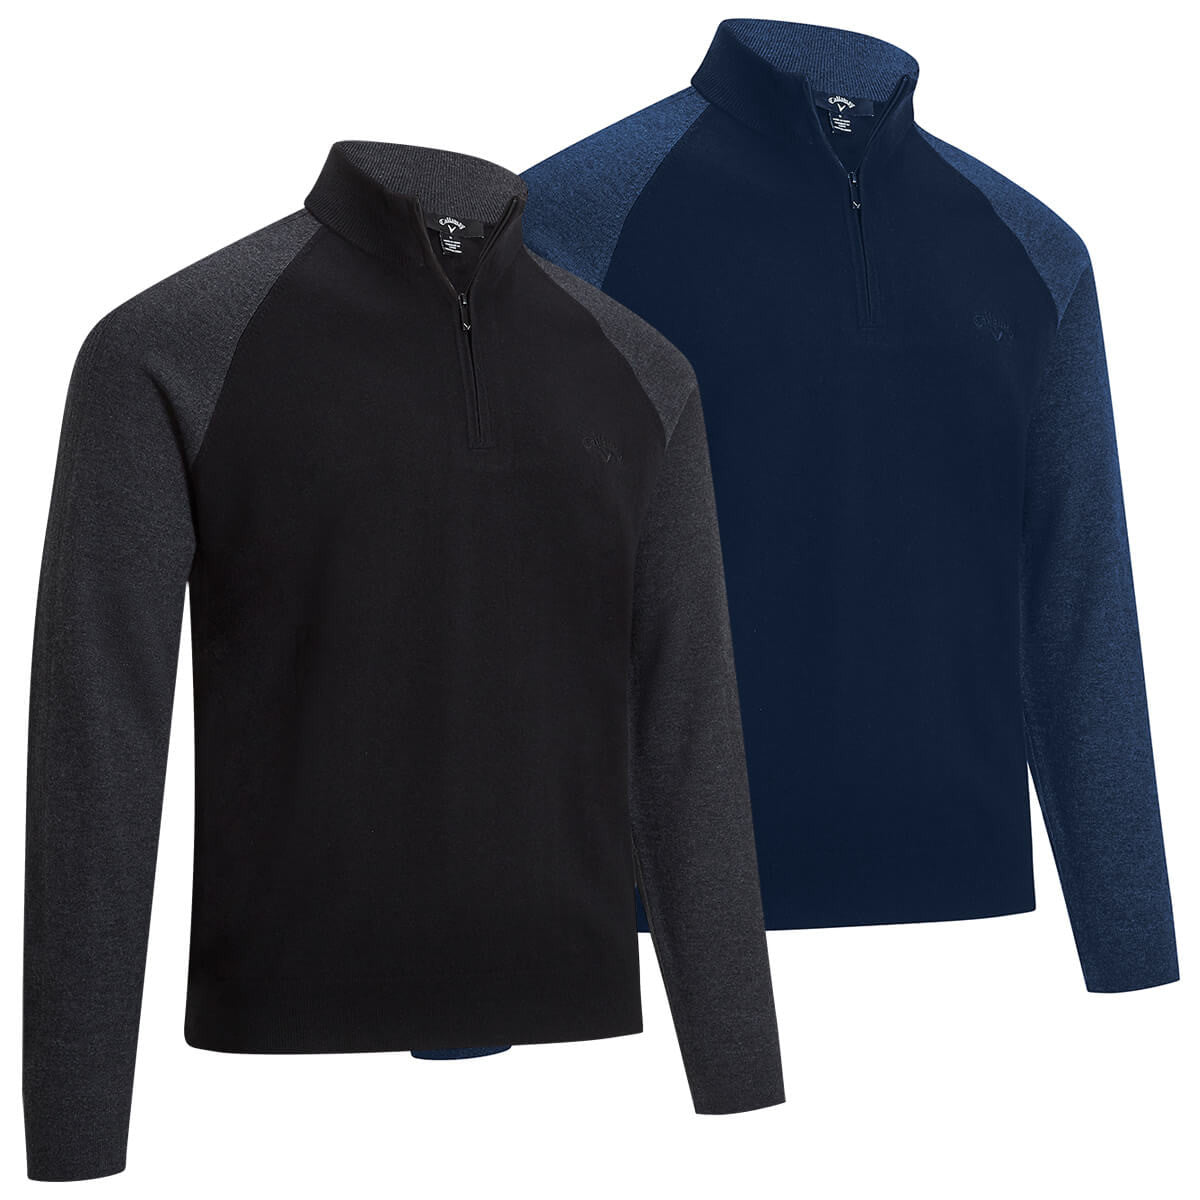 Callaway Golf Mens Raglan 1/4 Zip Merino Wool Thermal Easy Care Sweater